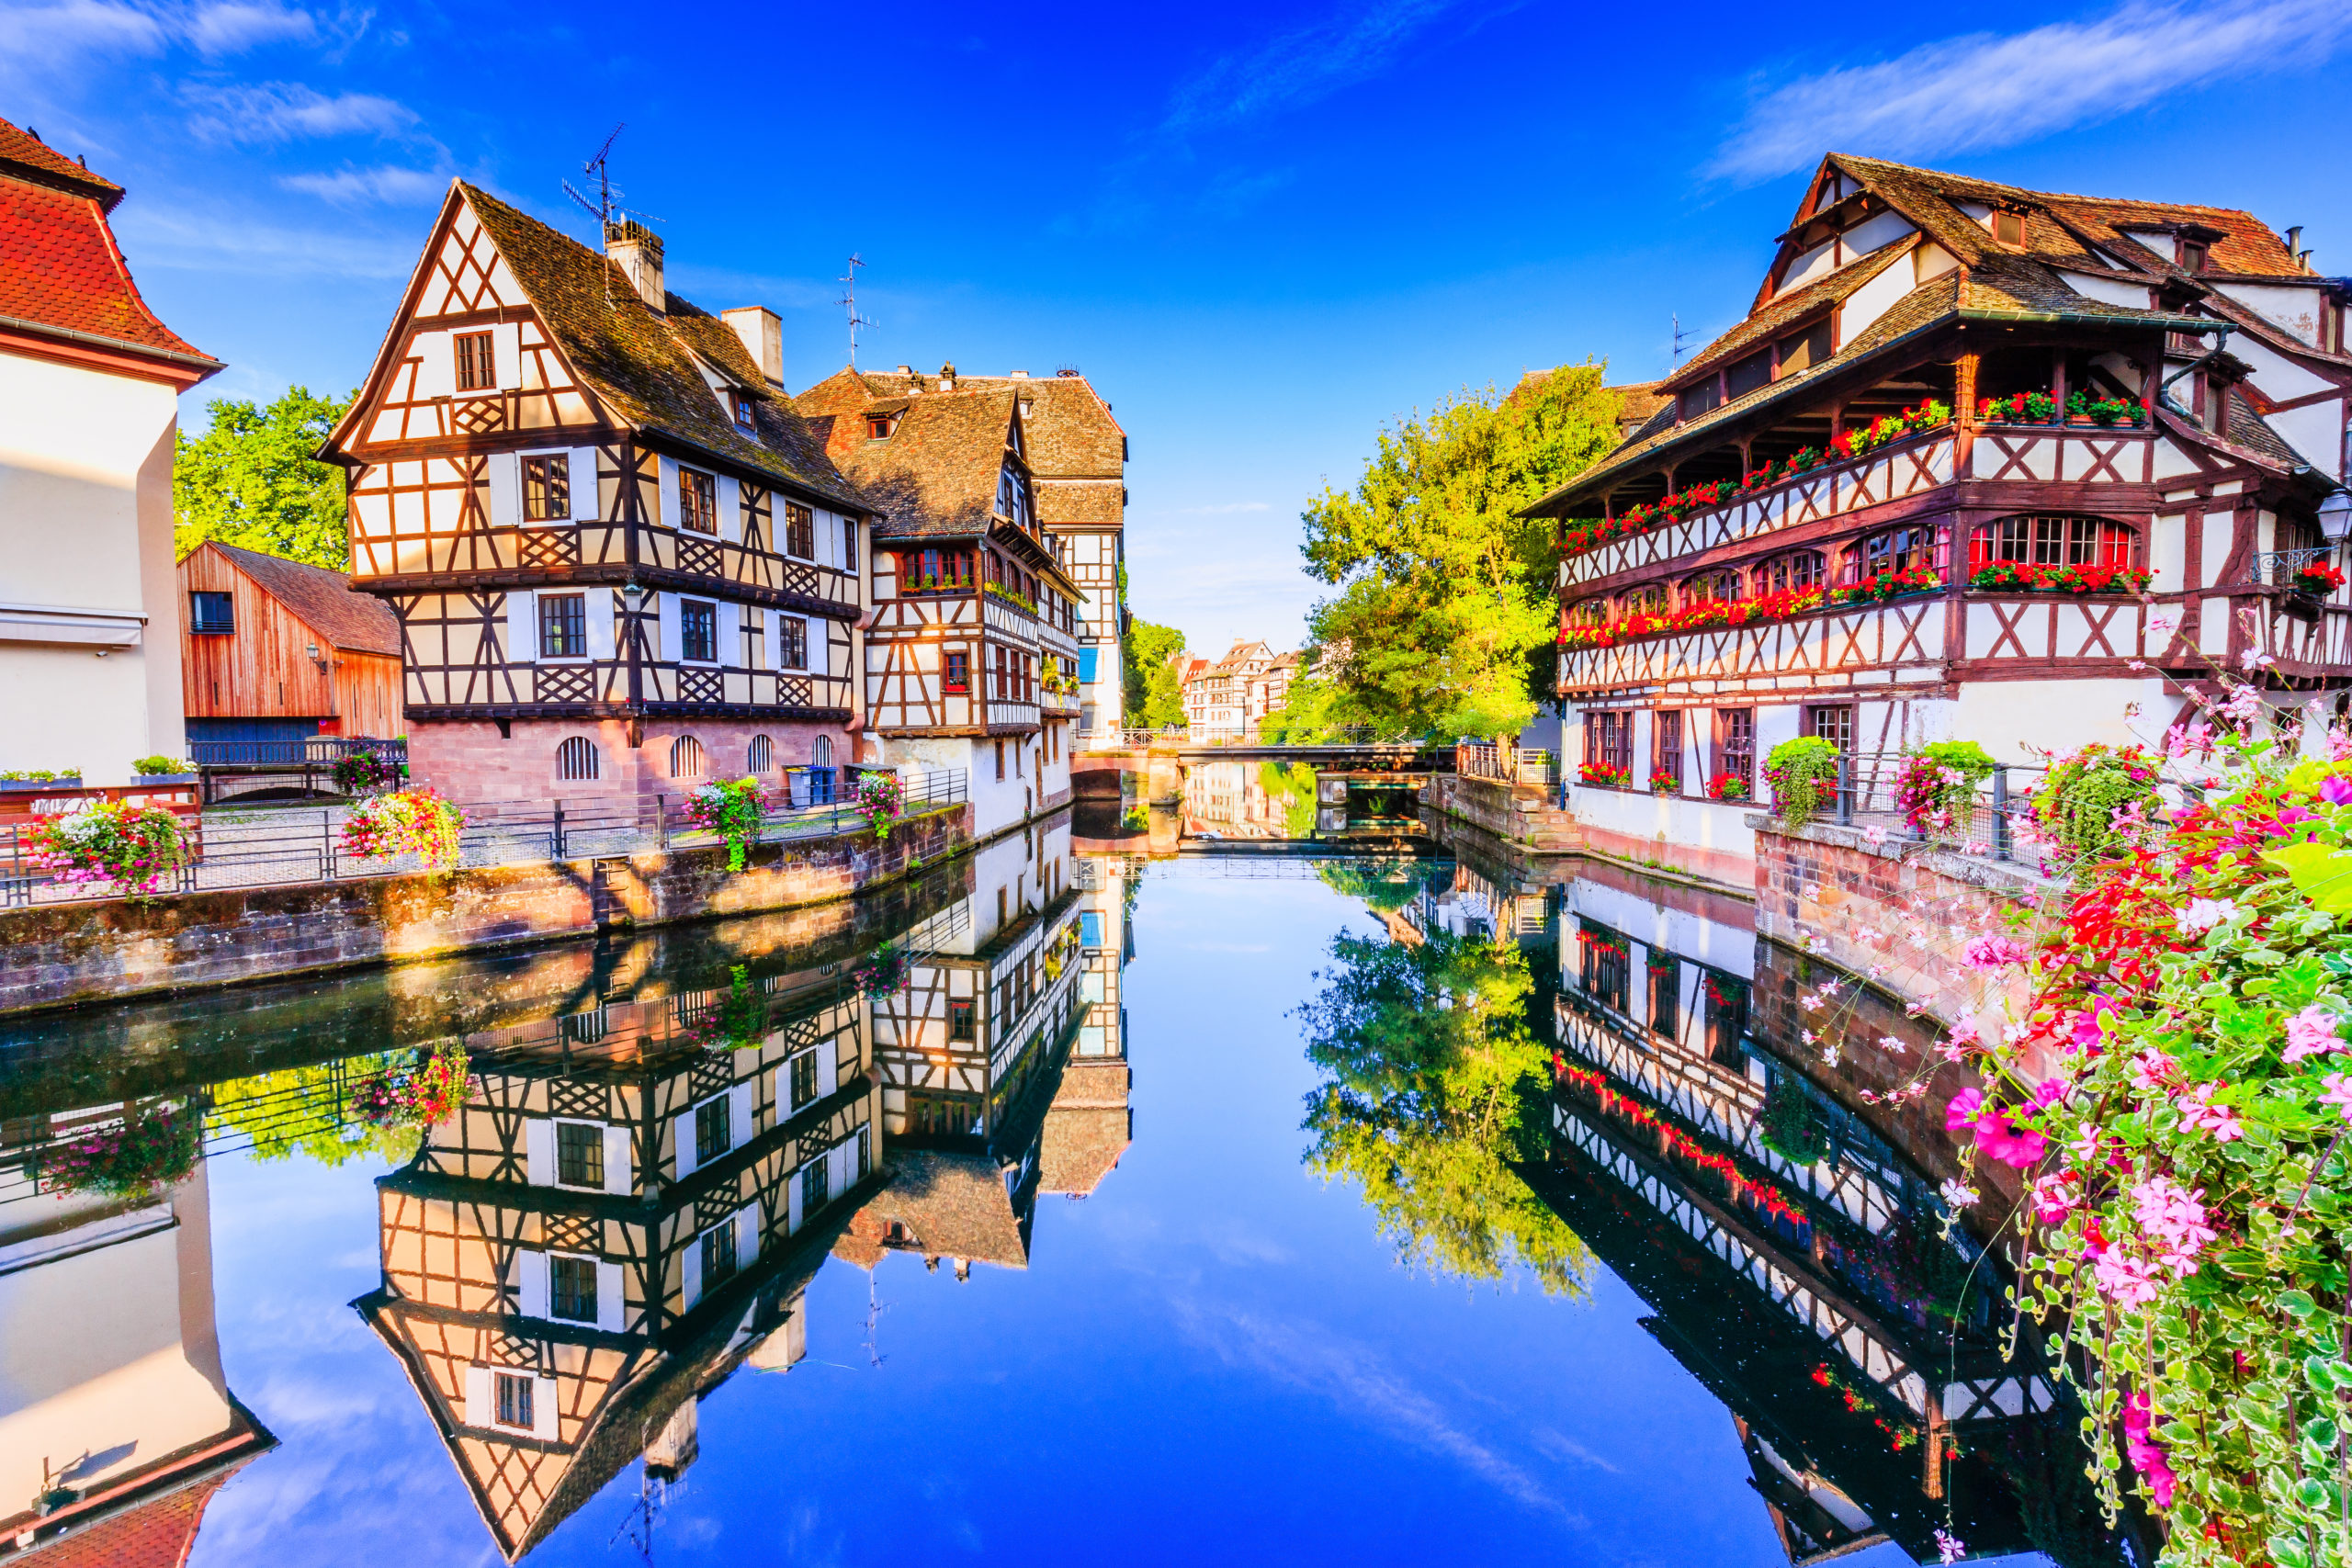 Strasbourg - It won't look like this in winter mind! Shutterstock By emperorcosar